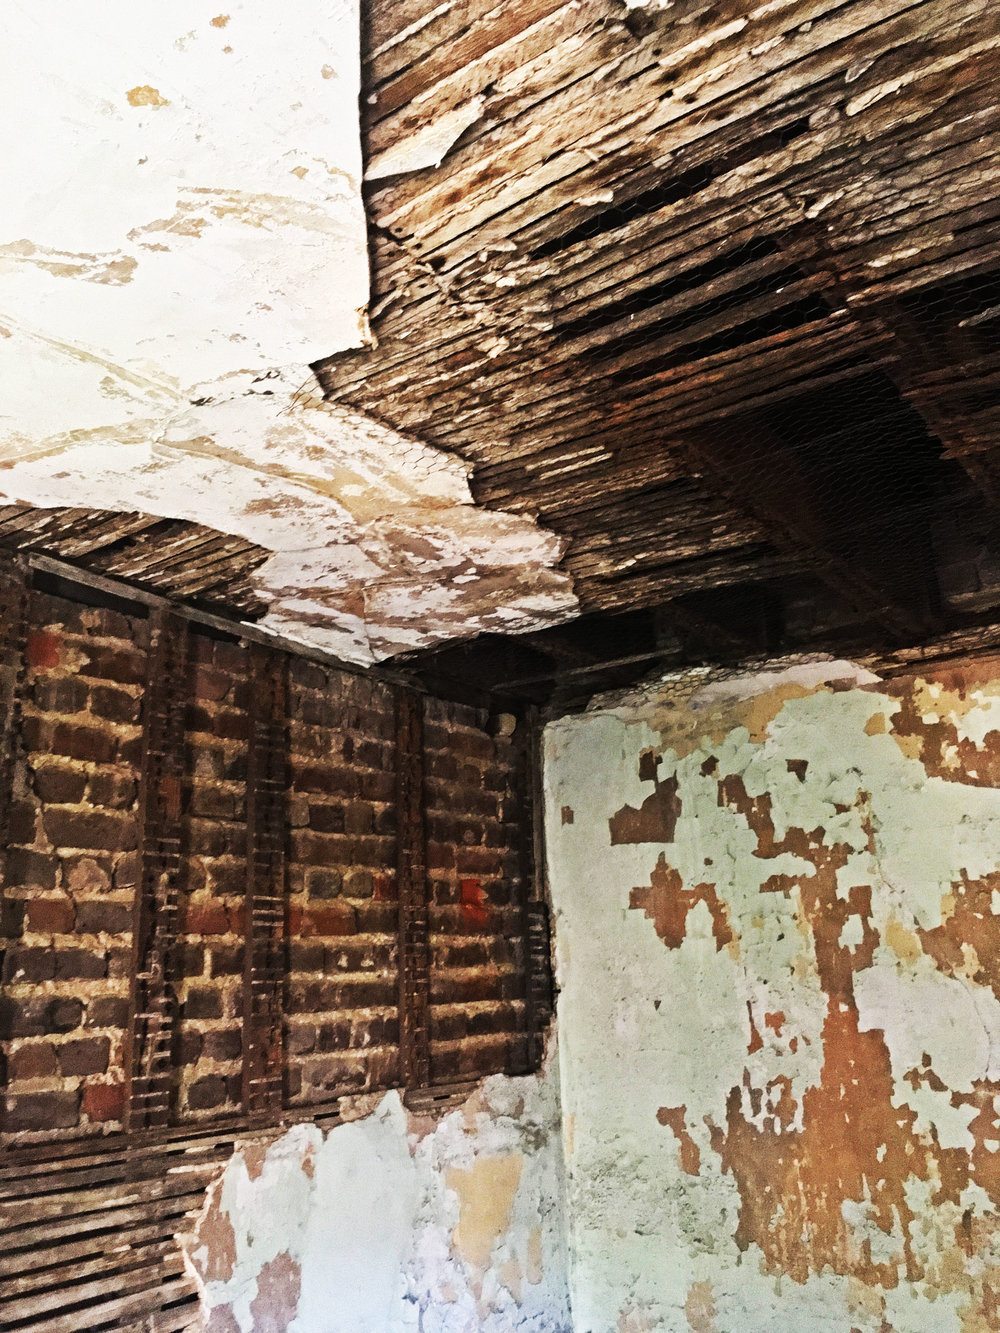 Aiken Rhett House Slave Quarters: Ceiling of first floor